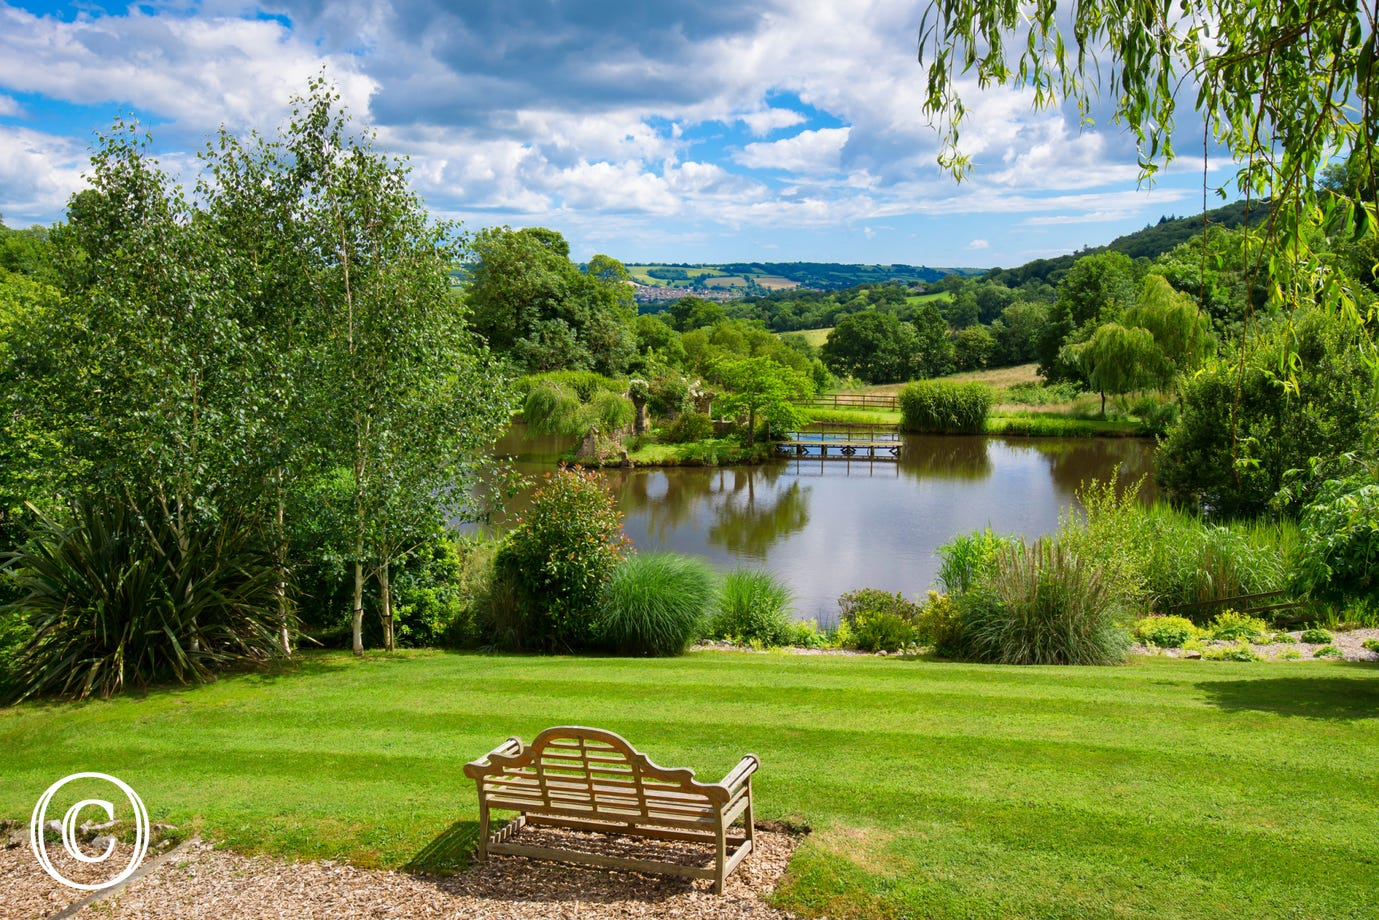 31 acres of countryside land and beautiful lakes